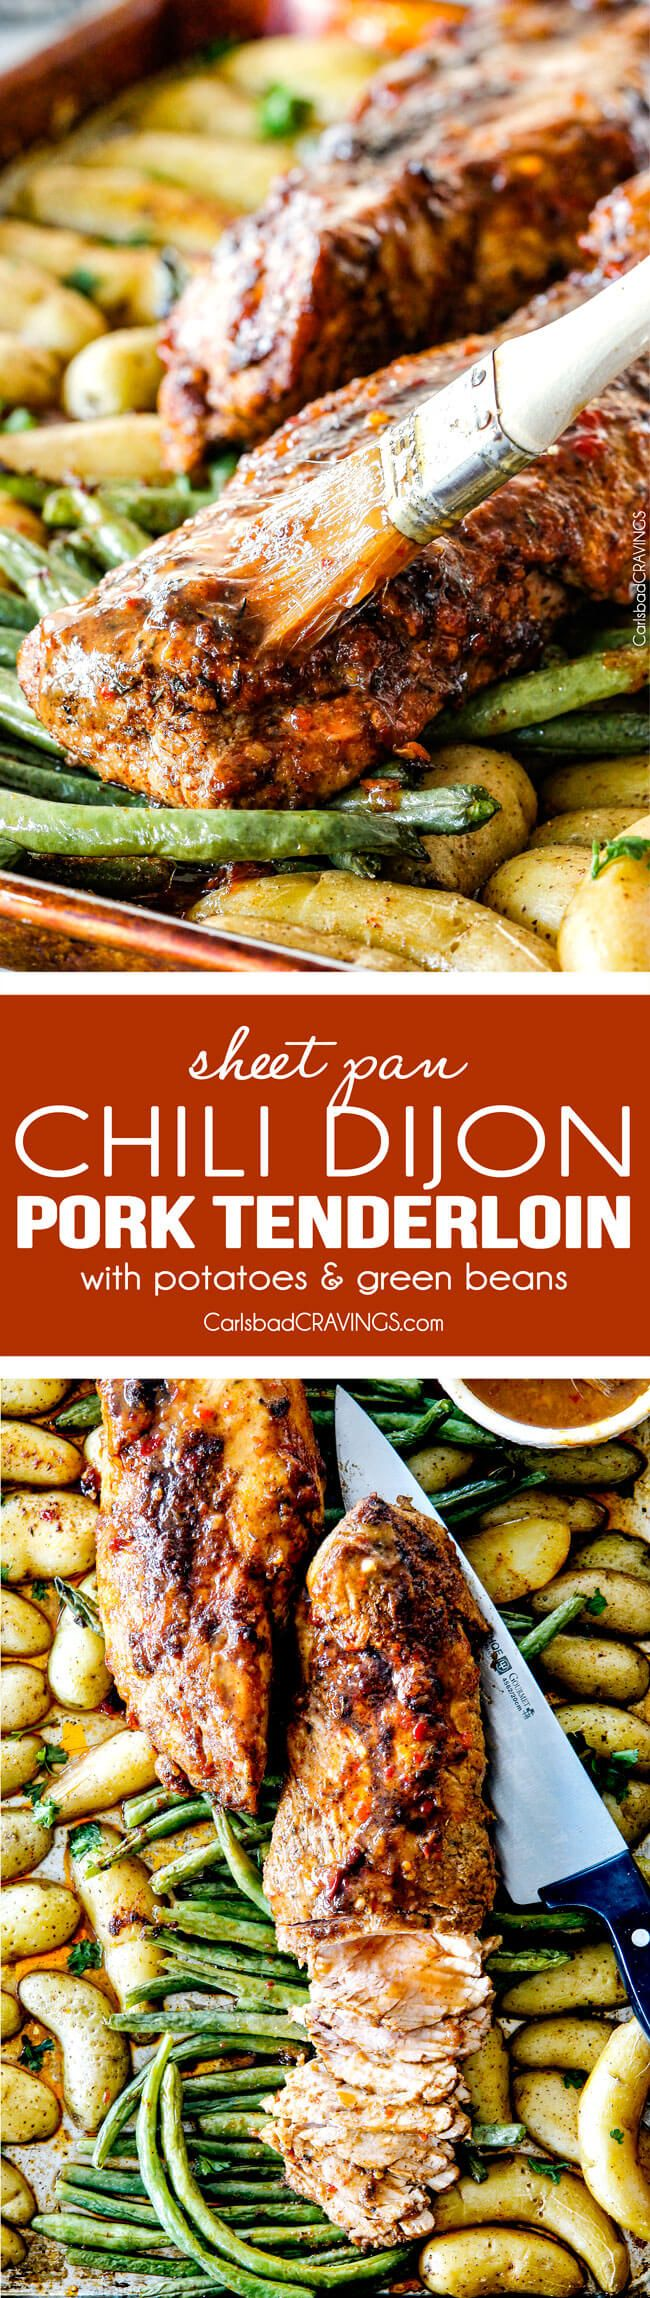 Sheet Pan Chili Dijon Pork Tenderloin with Green Beans and Potatoes all baked on ONE PAN! This is the most tender pork I have ever had and the tangy sweet and spicy flavors are out of this world!  via @carlsbadcraving